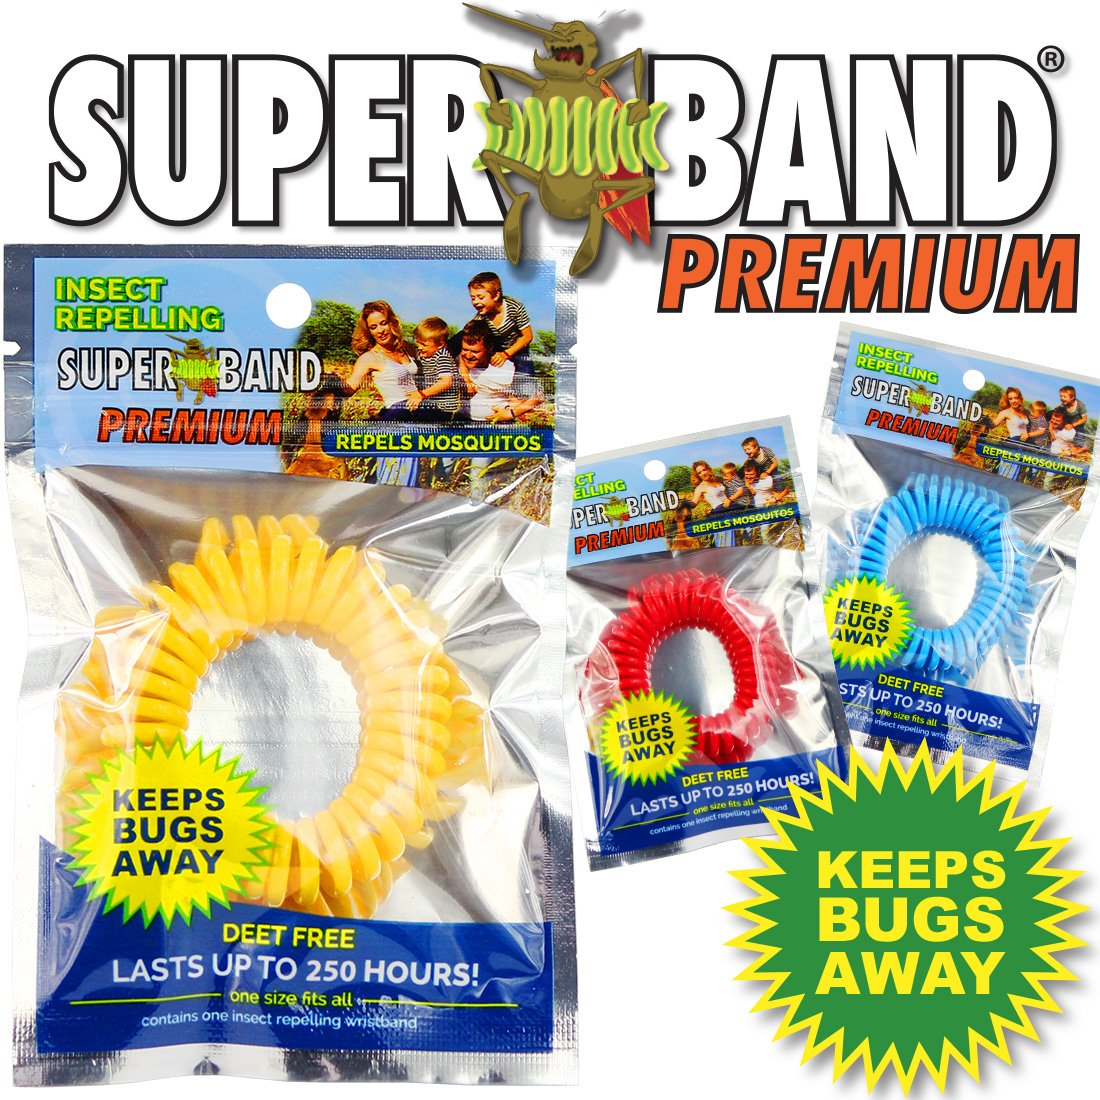 Superband Premium: Insect Repellent Bracelet - Blue Packaging - (50 Pack) by Superband